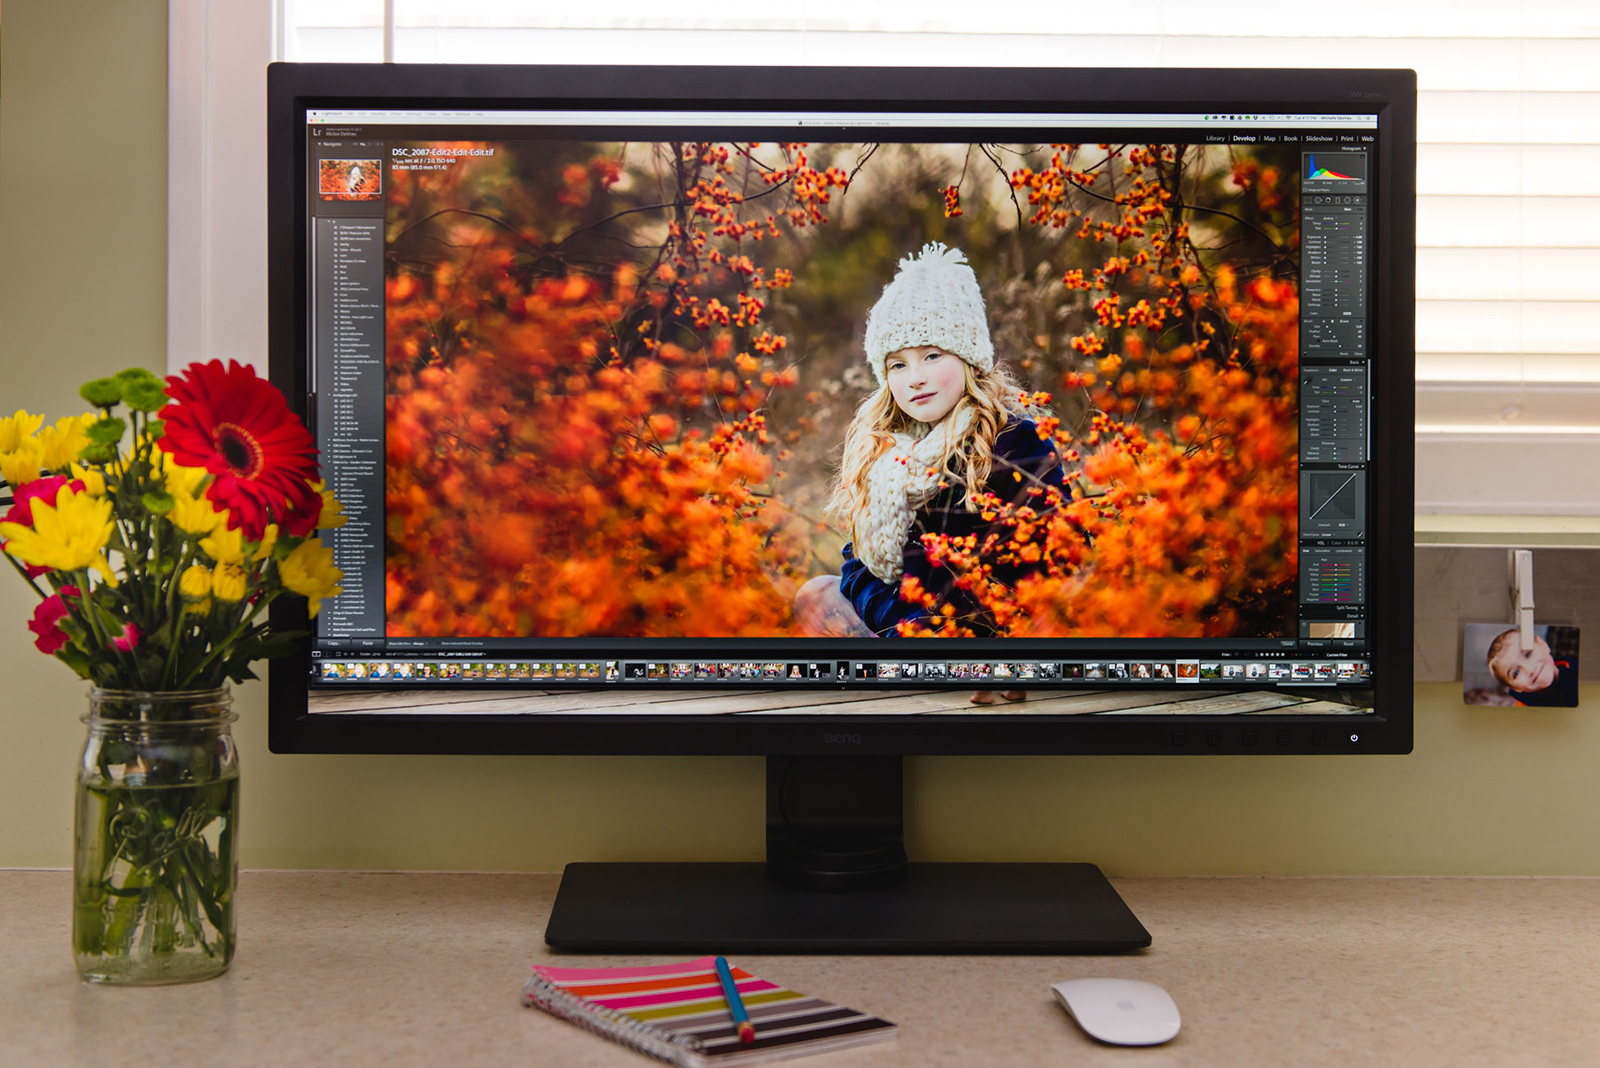 BenQ SW320 Monitor: Quality & functionality come together beautifully